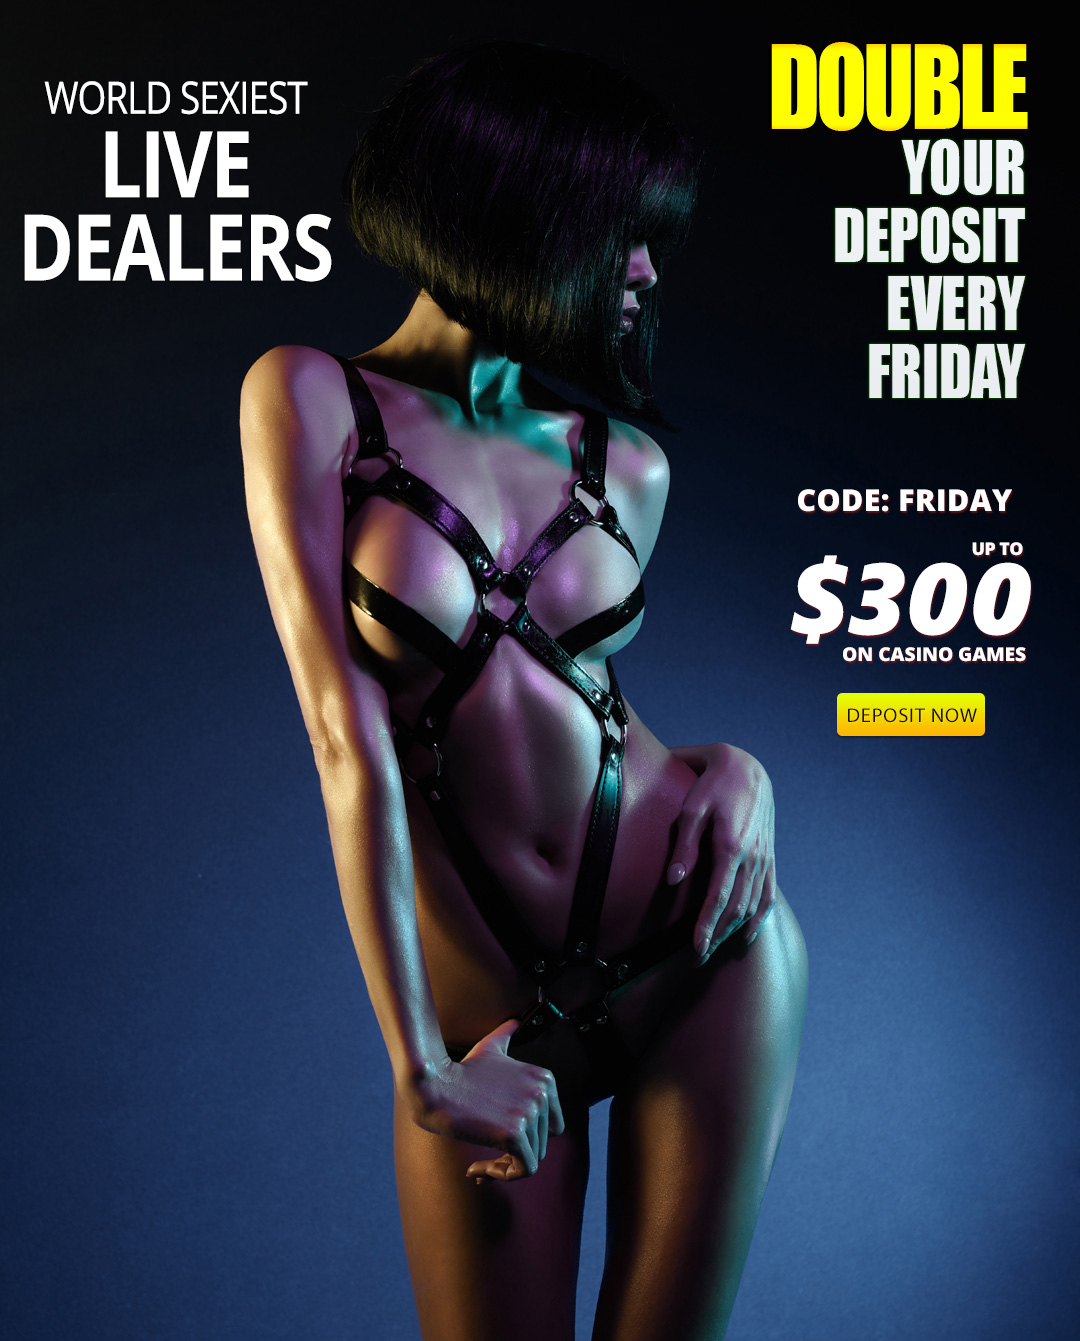 double-your-deposit-every-friday-code-friday